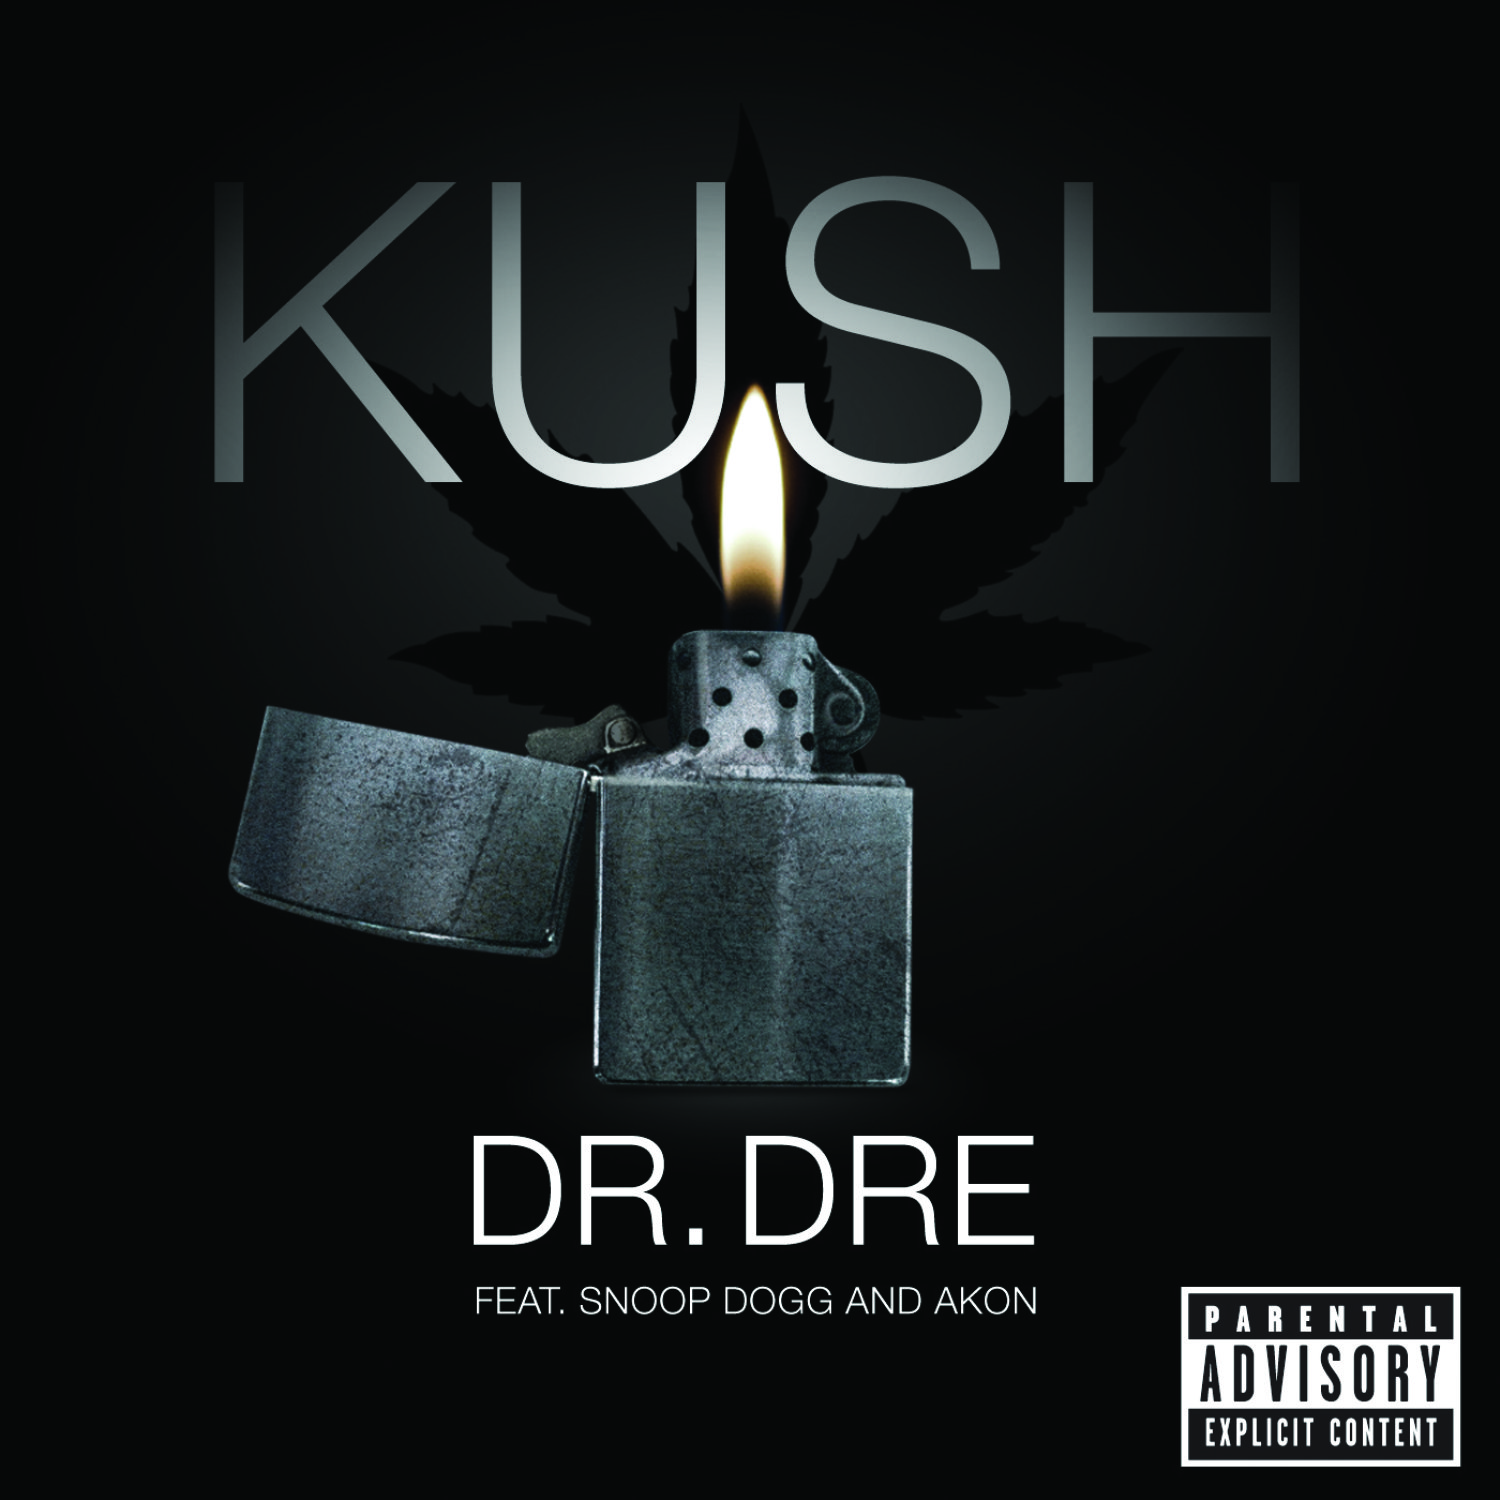 Dr. Dre feat. Snoop Dogg & Akon - Kush (main) Lyrics